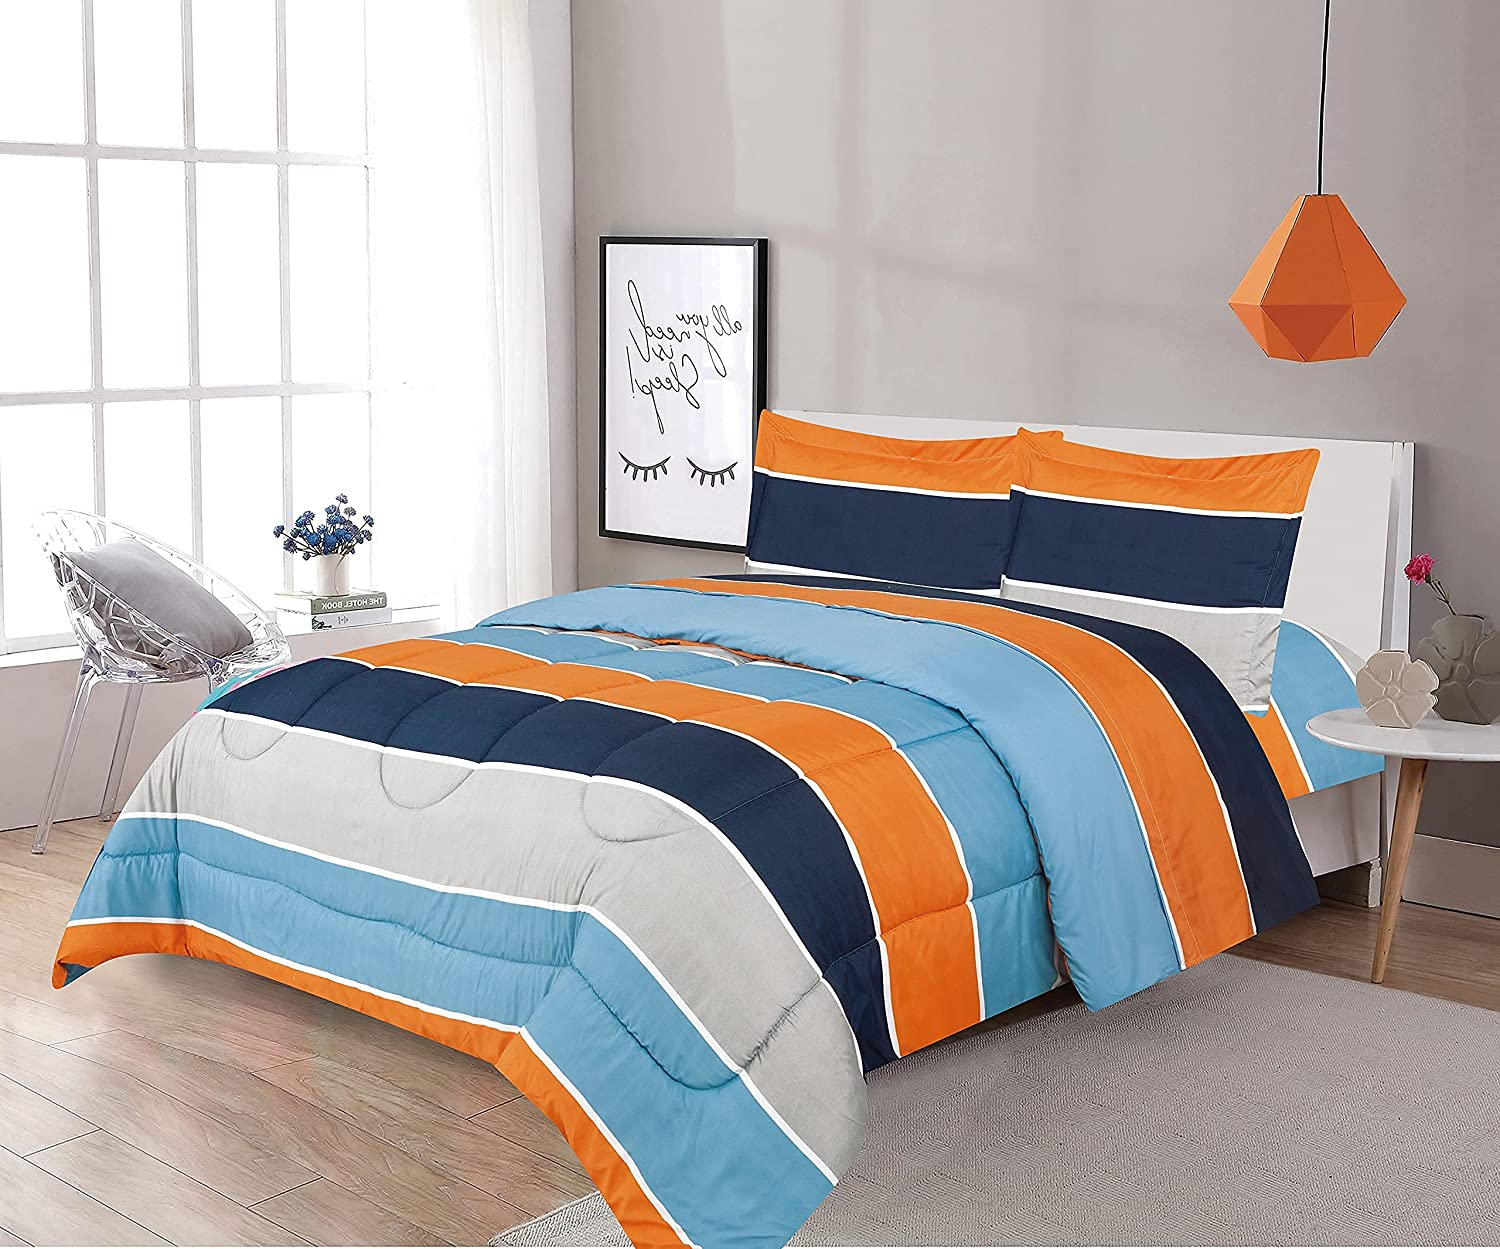 Max 50% OFF LinenTopia 7 Piece Queen 55% OFF Size Comforter Set Bag S w Shams Bed in